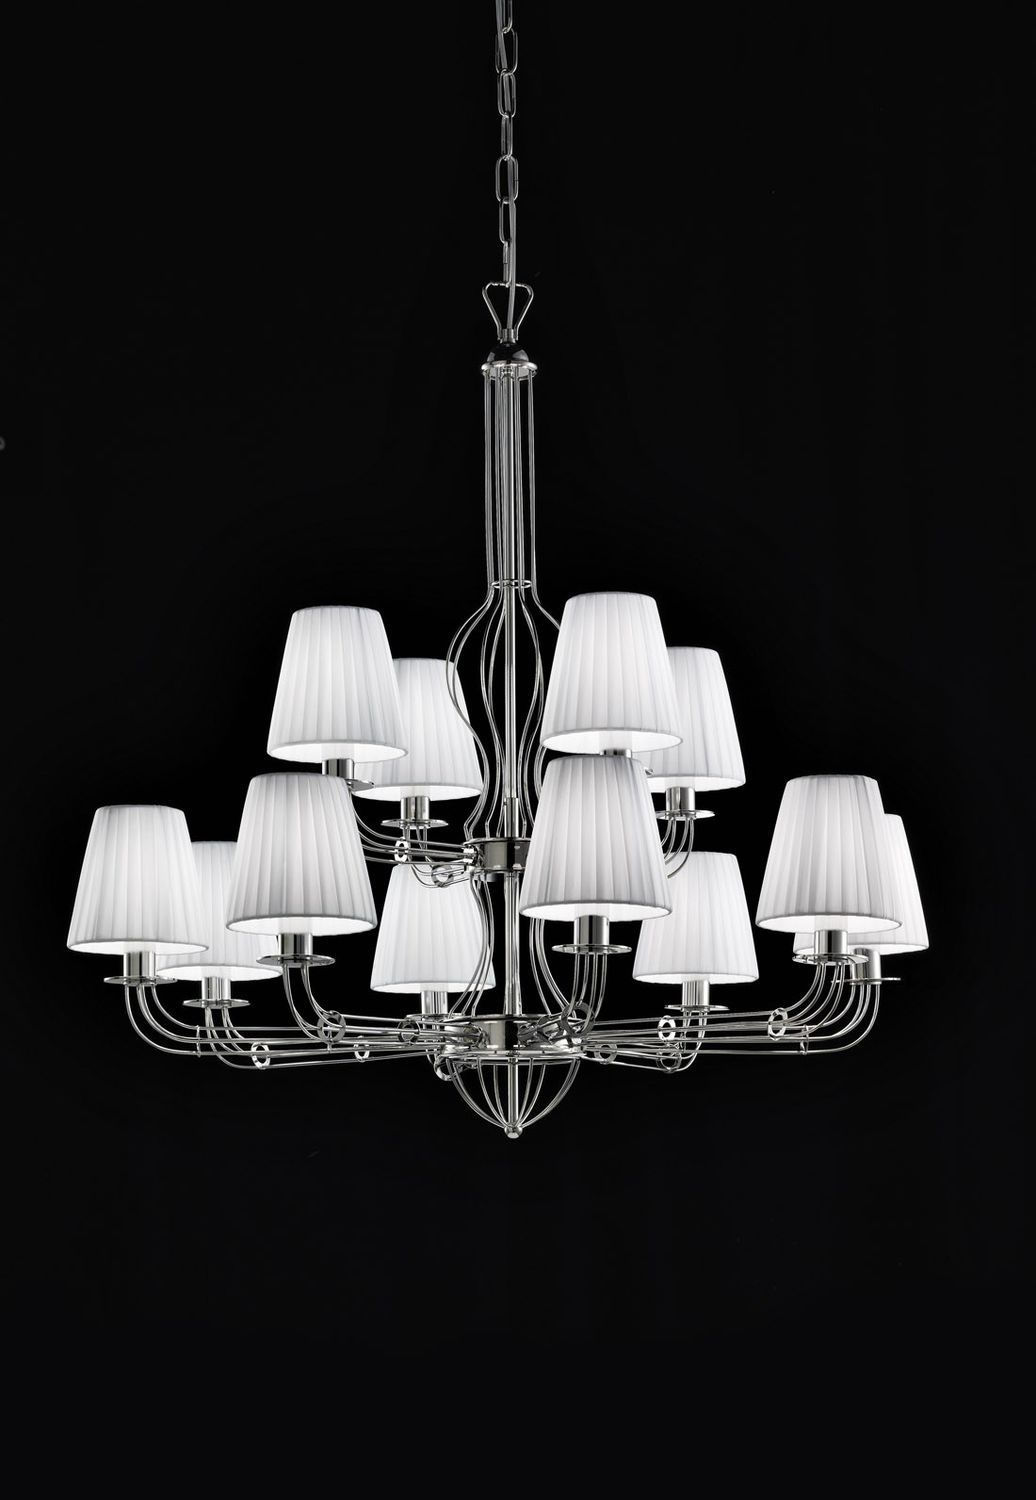 Contemporary chandelier metal fabric led calle metal lux contemporary chandelier metal fabric led calle metal lux arubaitofo Image collections